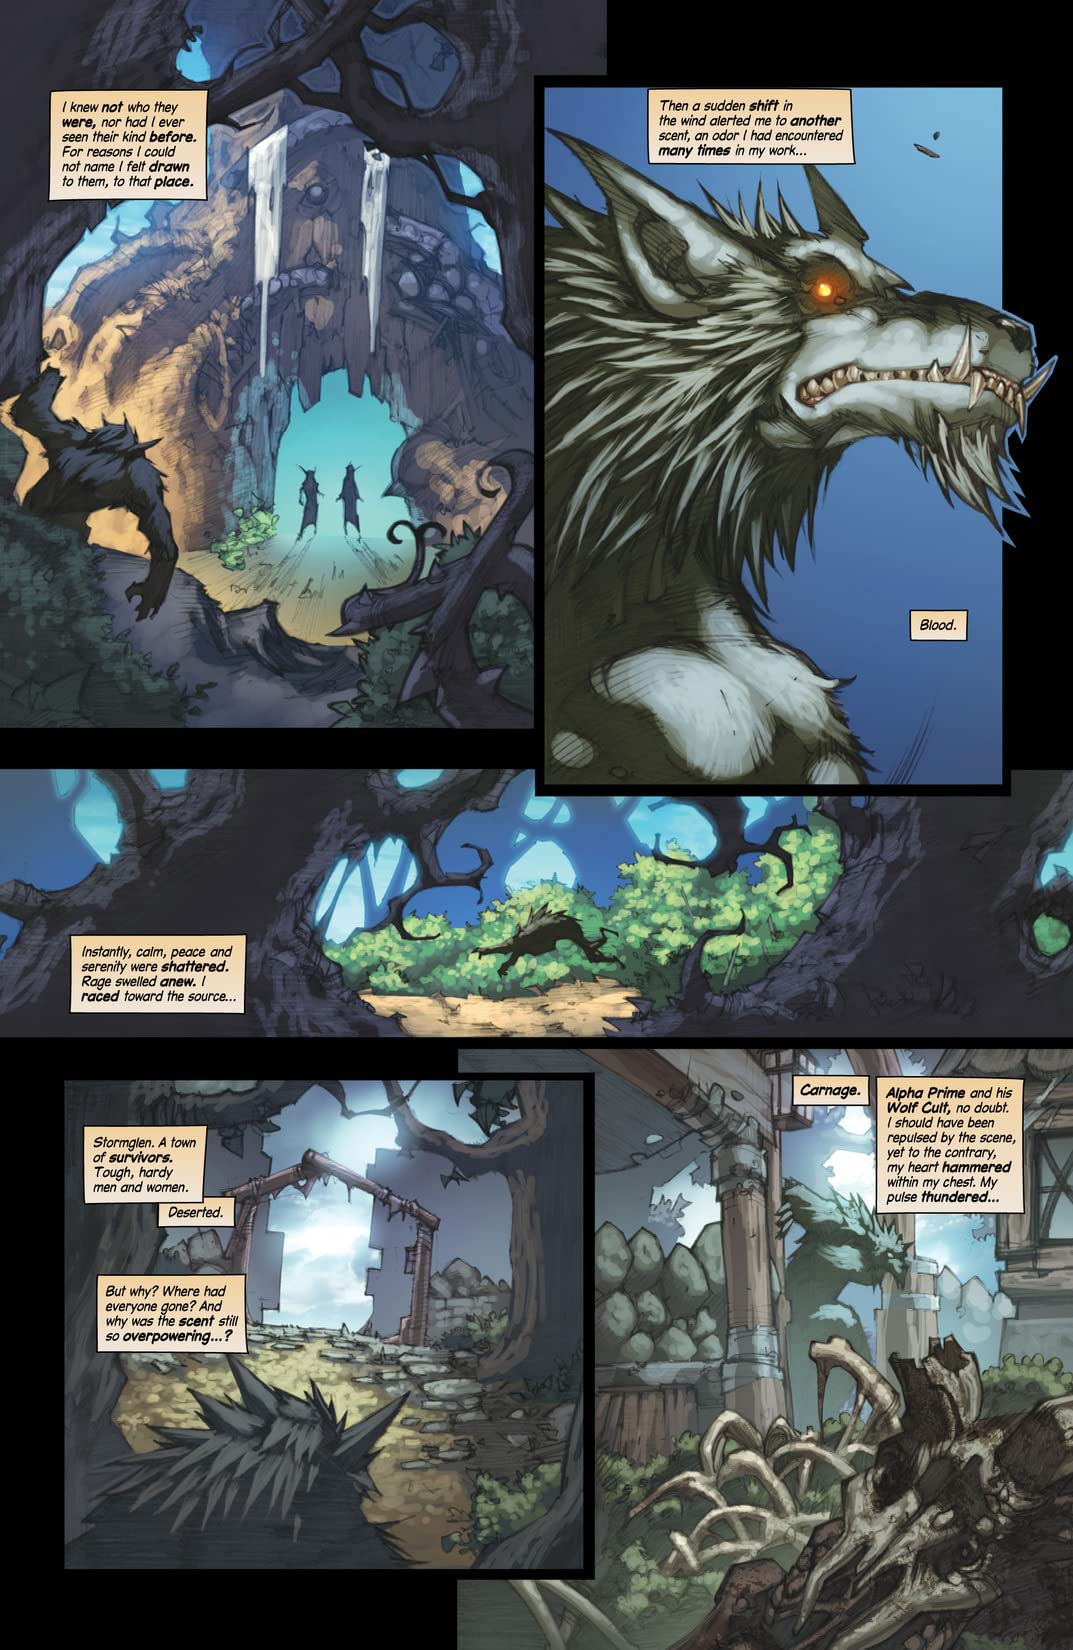 World of Warcraft: Curse of the Worgen #3 (of 5)